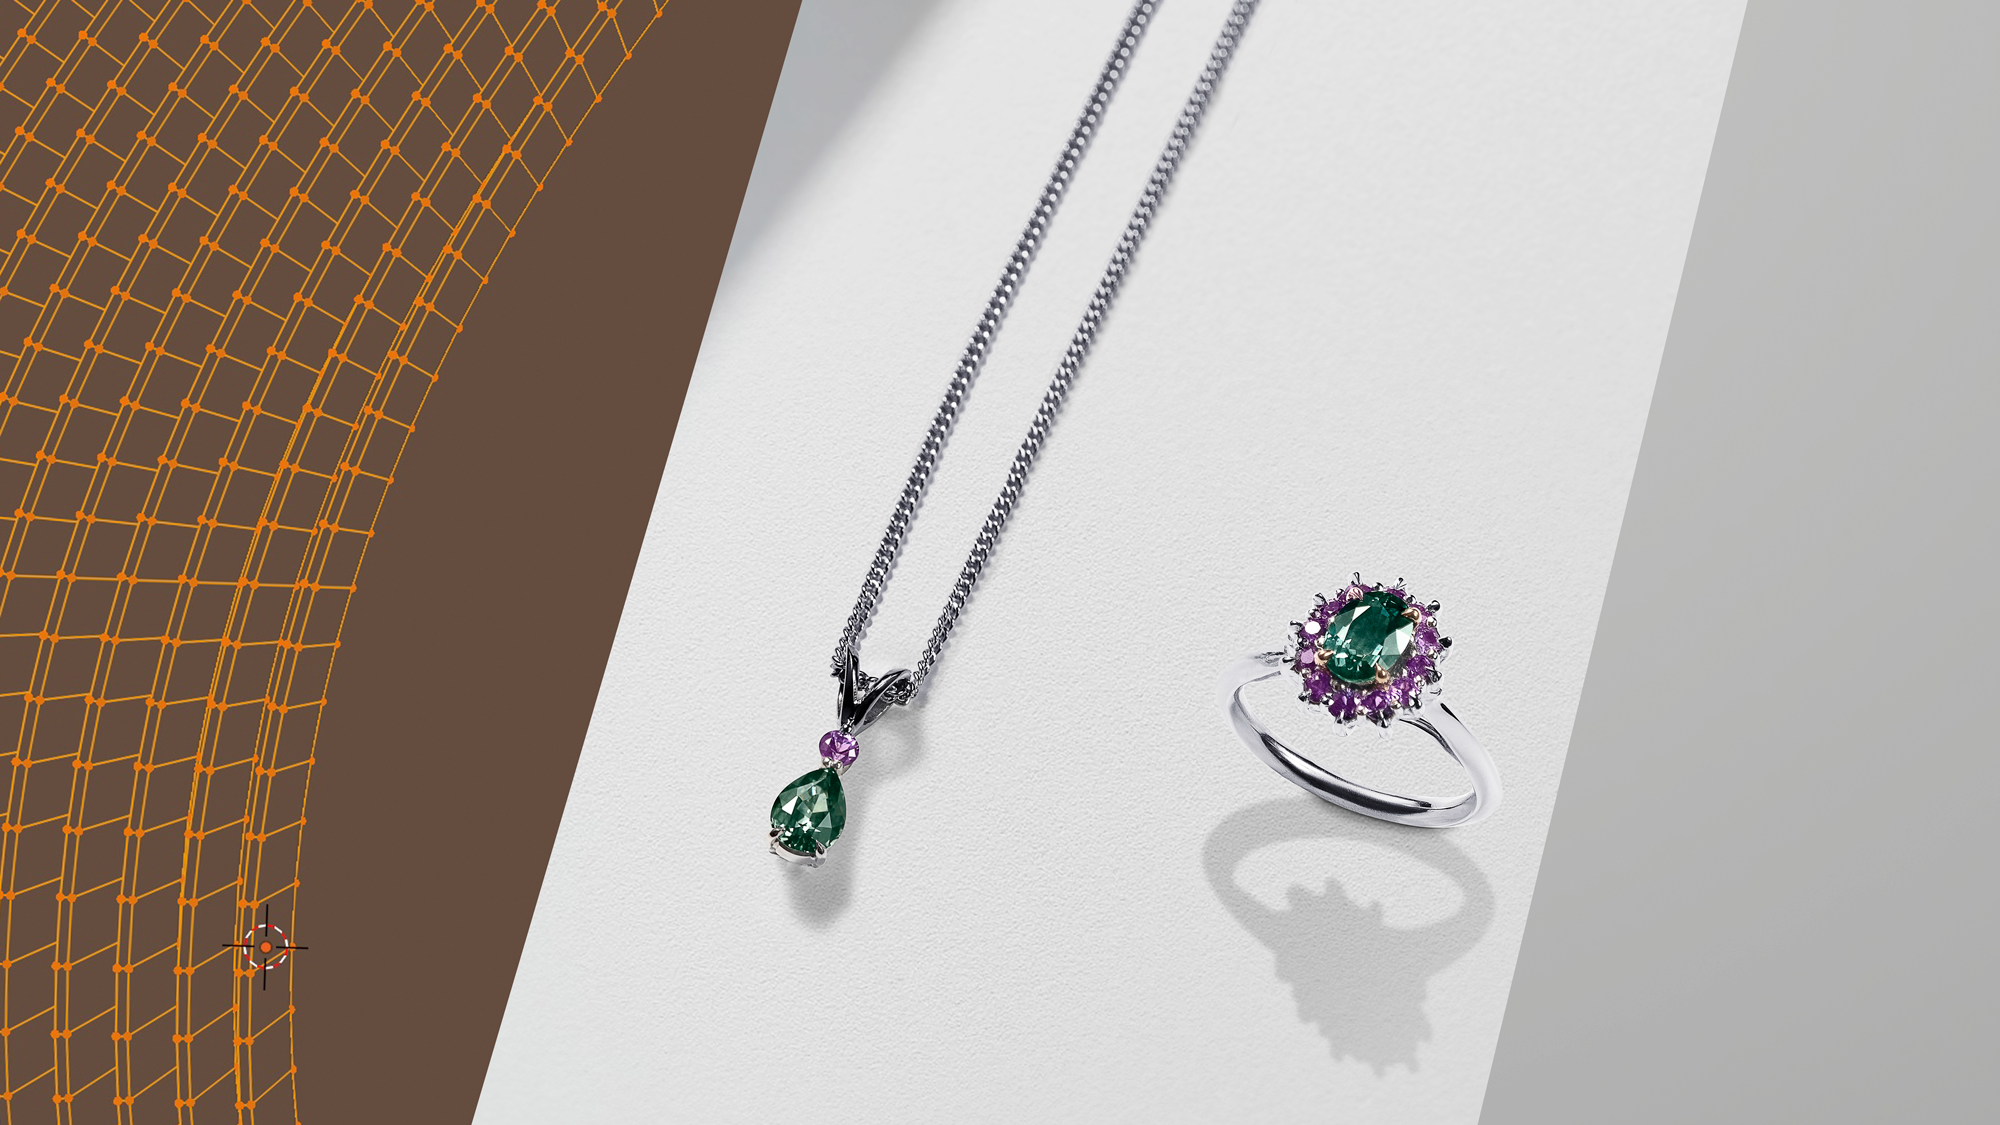 Wenbo Zhao-CGI Jewellery Photography with Object Maker-Green and Purple Sapphire Ring and Necklace CGI BTS